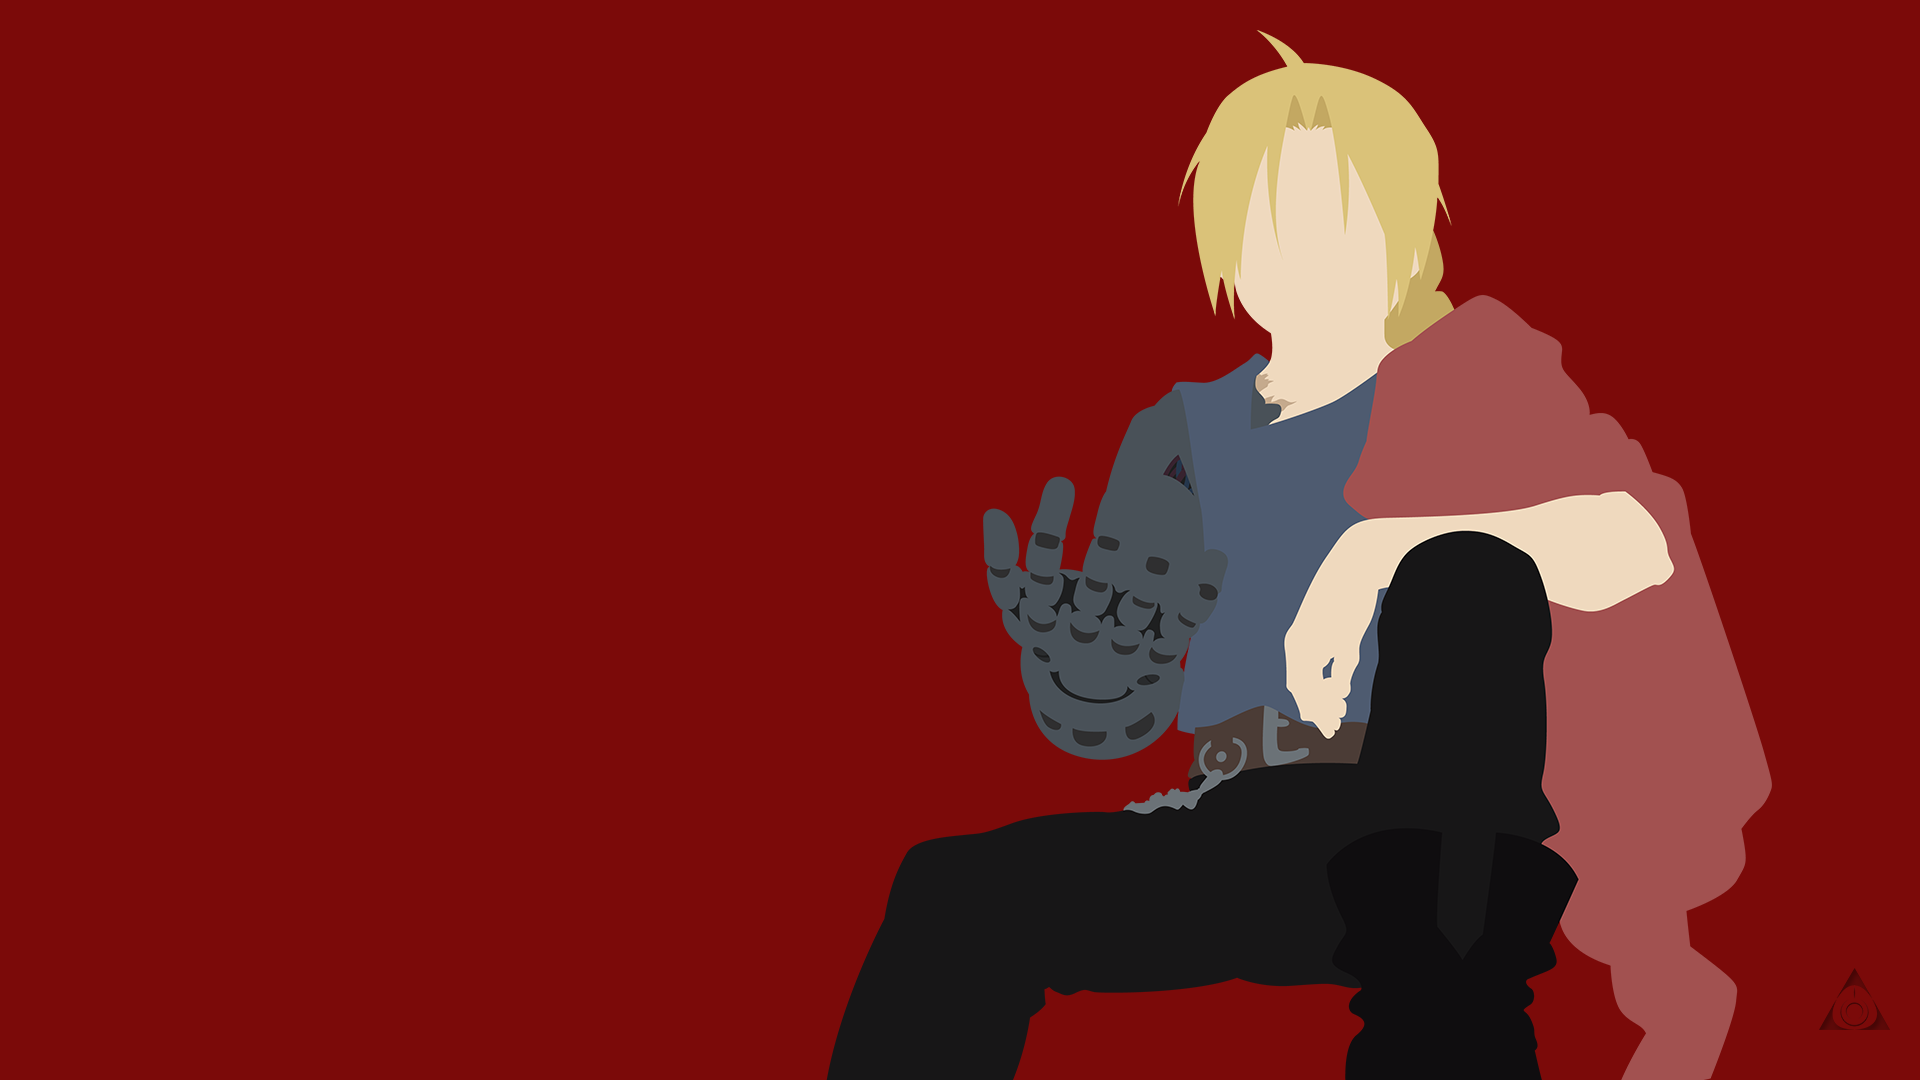 Edward Elric Wallpapers HD 1920x1080